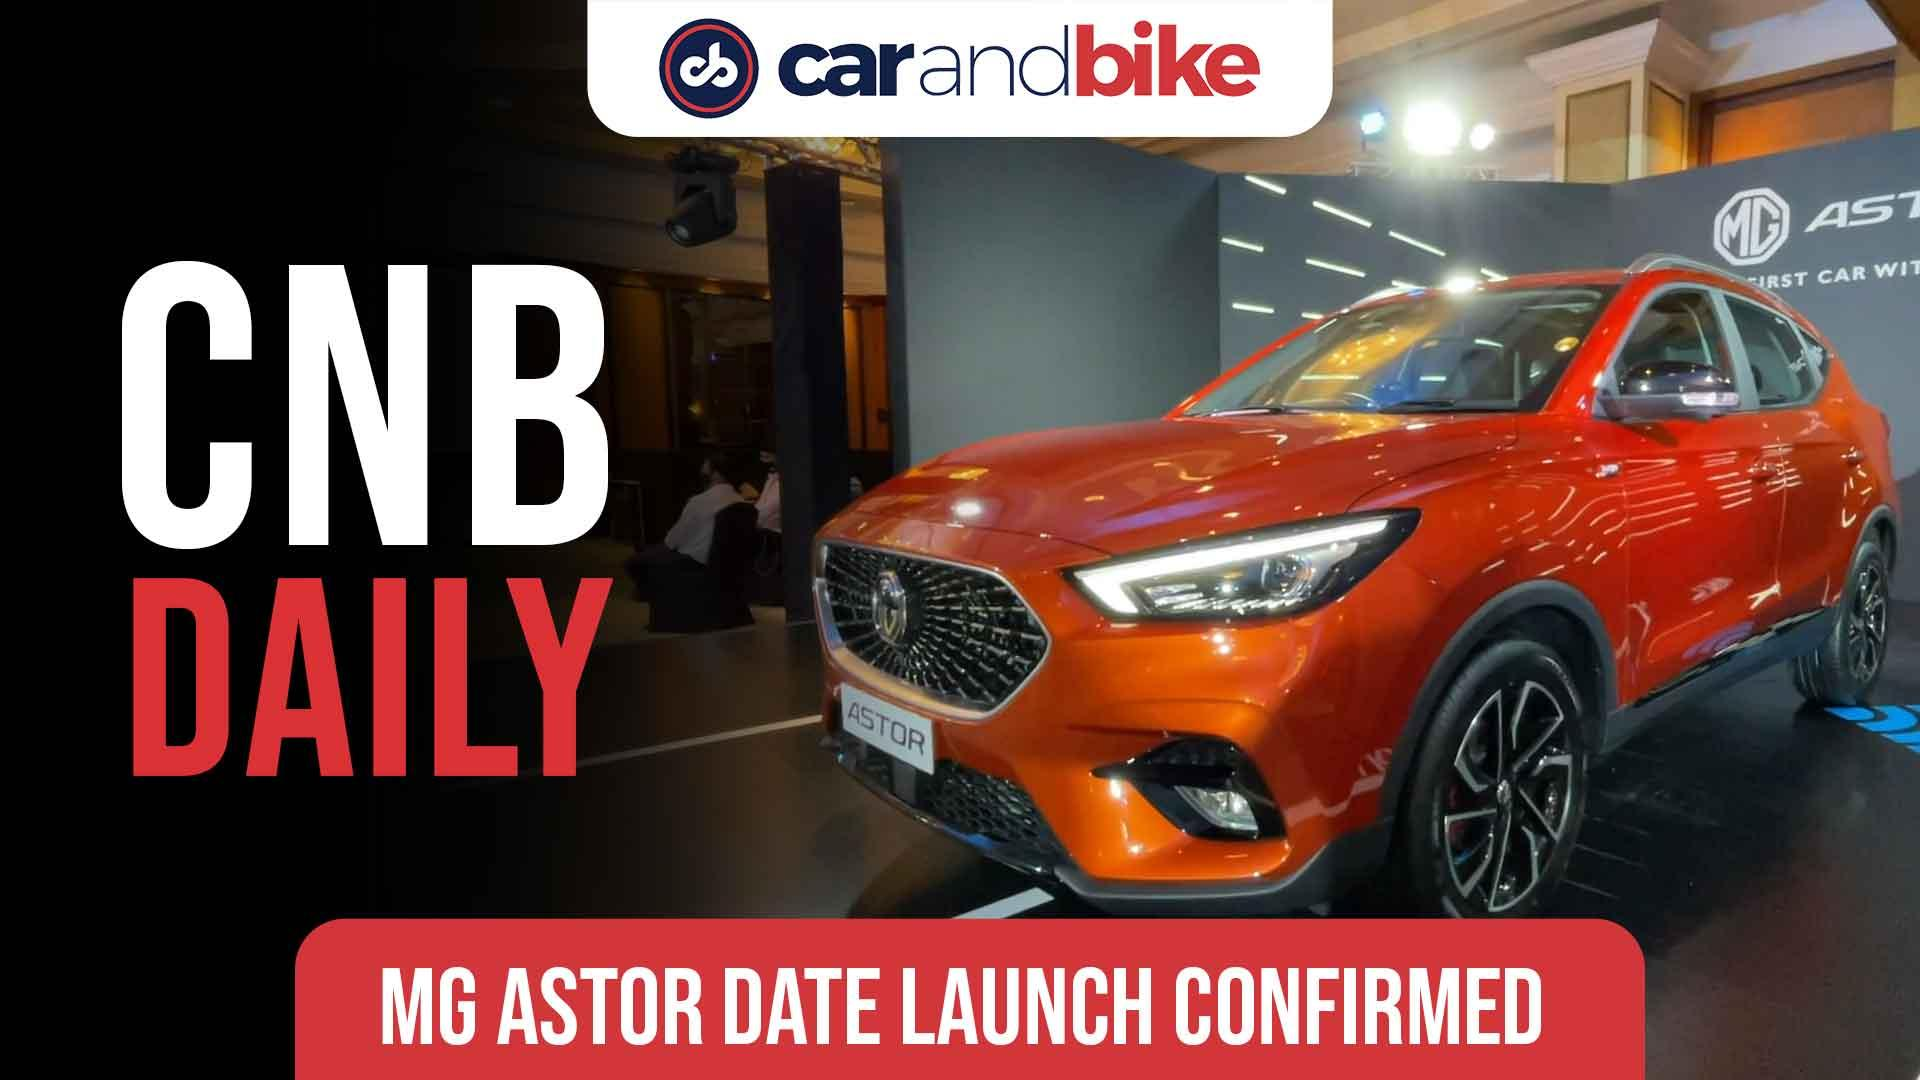 MG Astor compact SUV India launch date confirmed